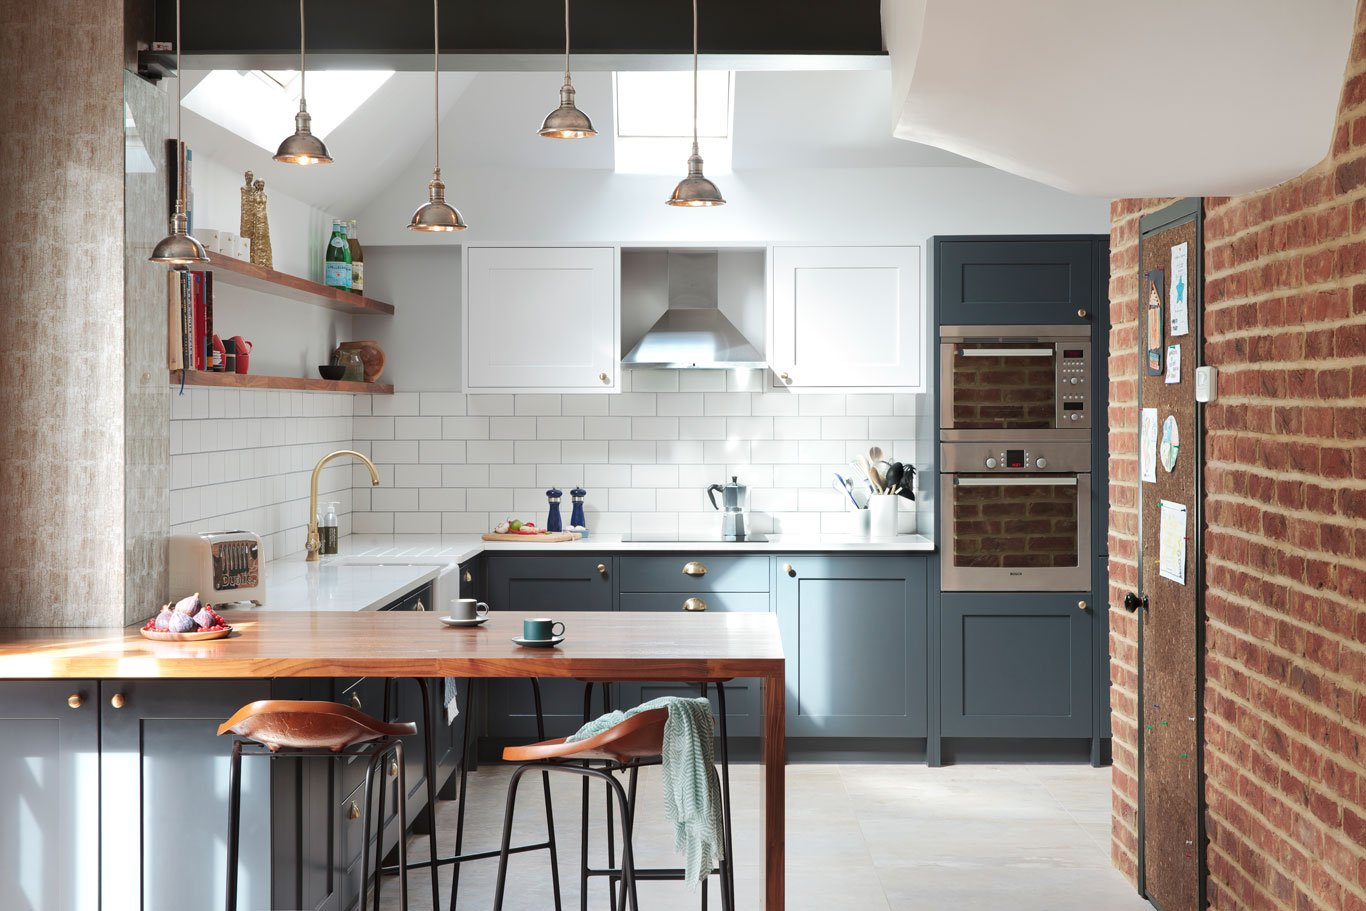 Industrial style kitchen in deep blue with exposed side wall, wooden breakfast bar and pendant lighting